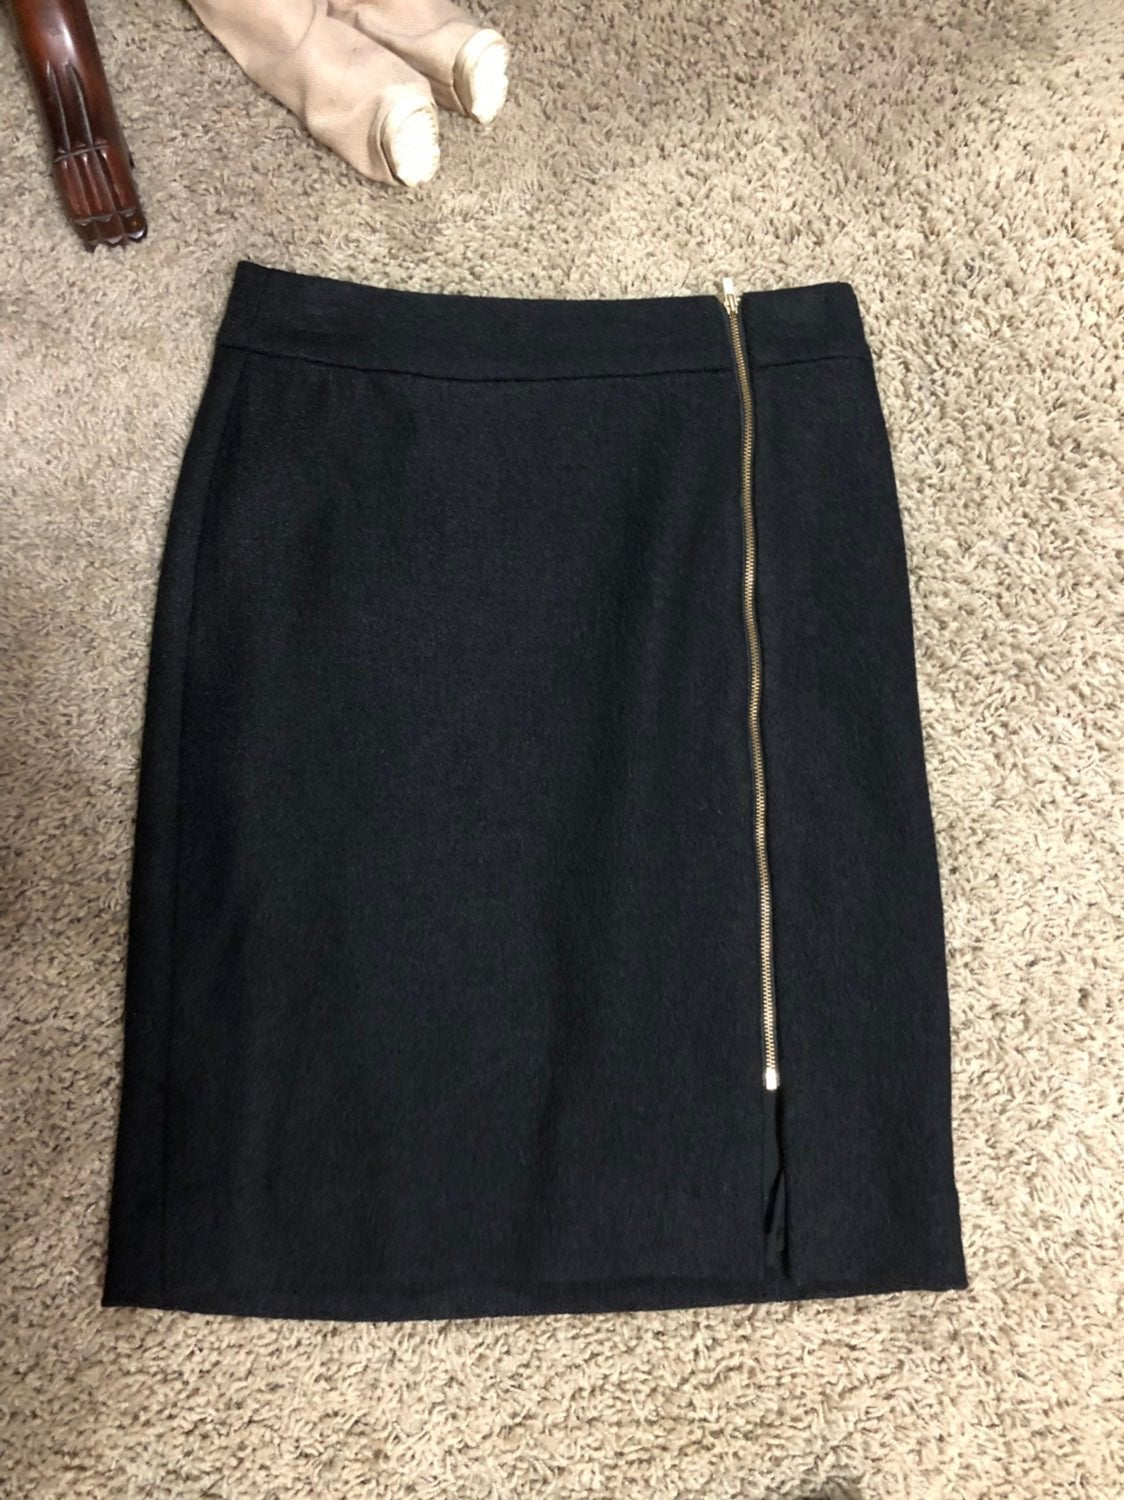 Black Banana Republic and J Crew skirts